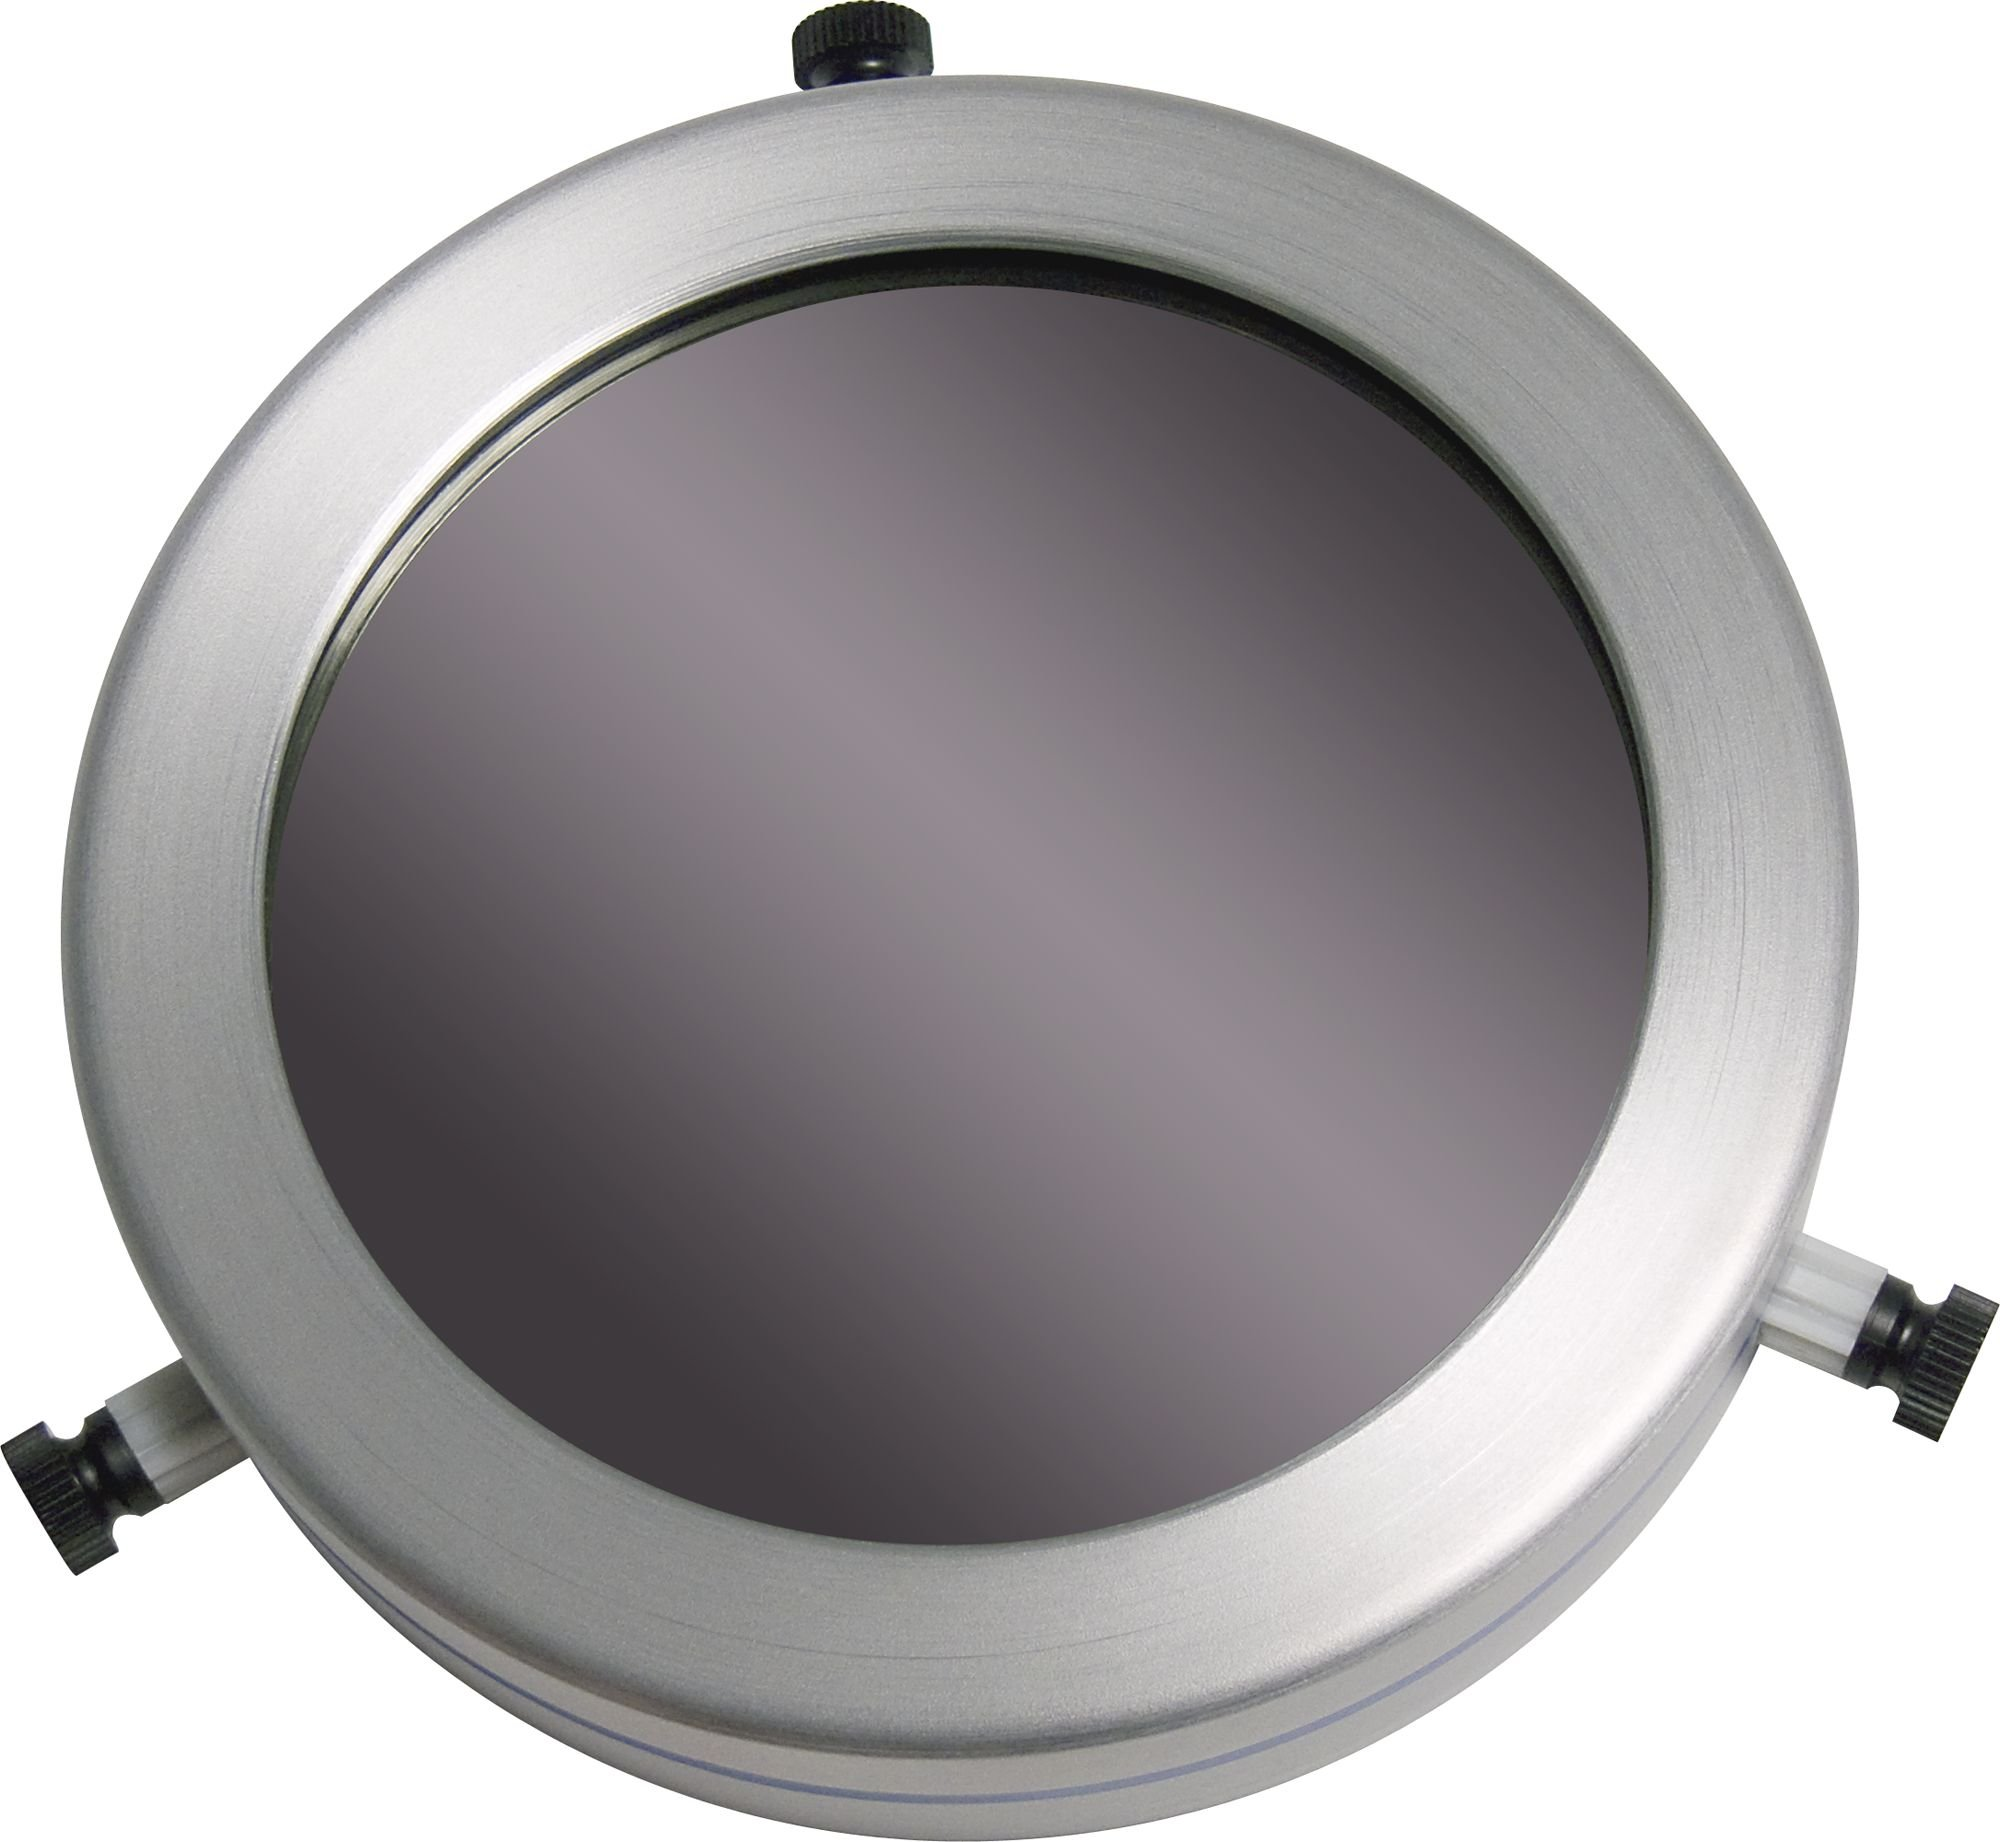 Orion 07798 4.57-Inch ID Full Aperture Solar Filter (Black) by Orion